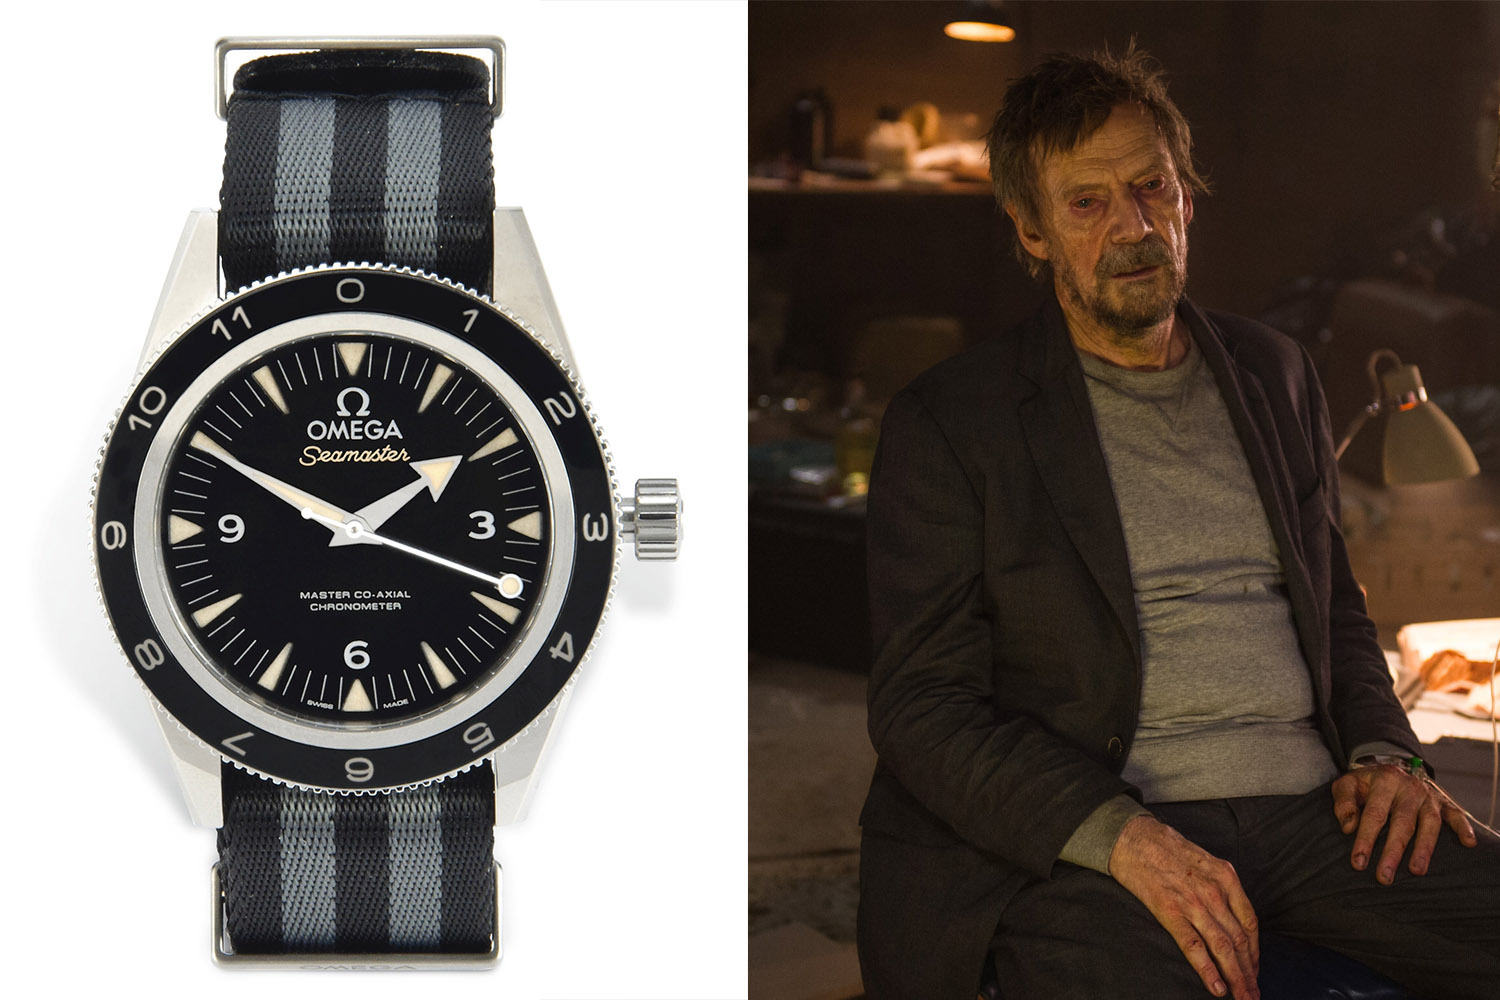 Christie's James Bond Spectre Auction - Omega Seamaster 300 Spectre - donated by Mr White Jesper Christensen